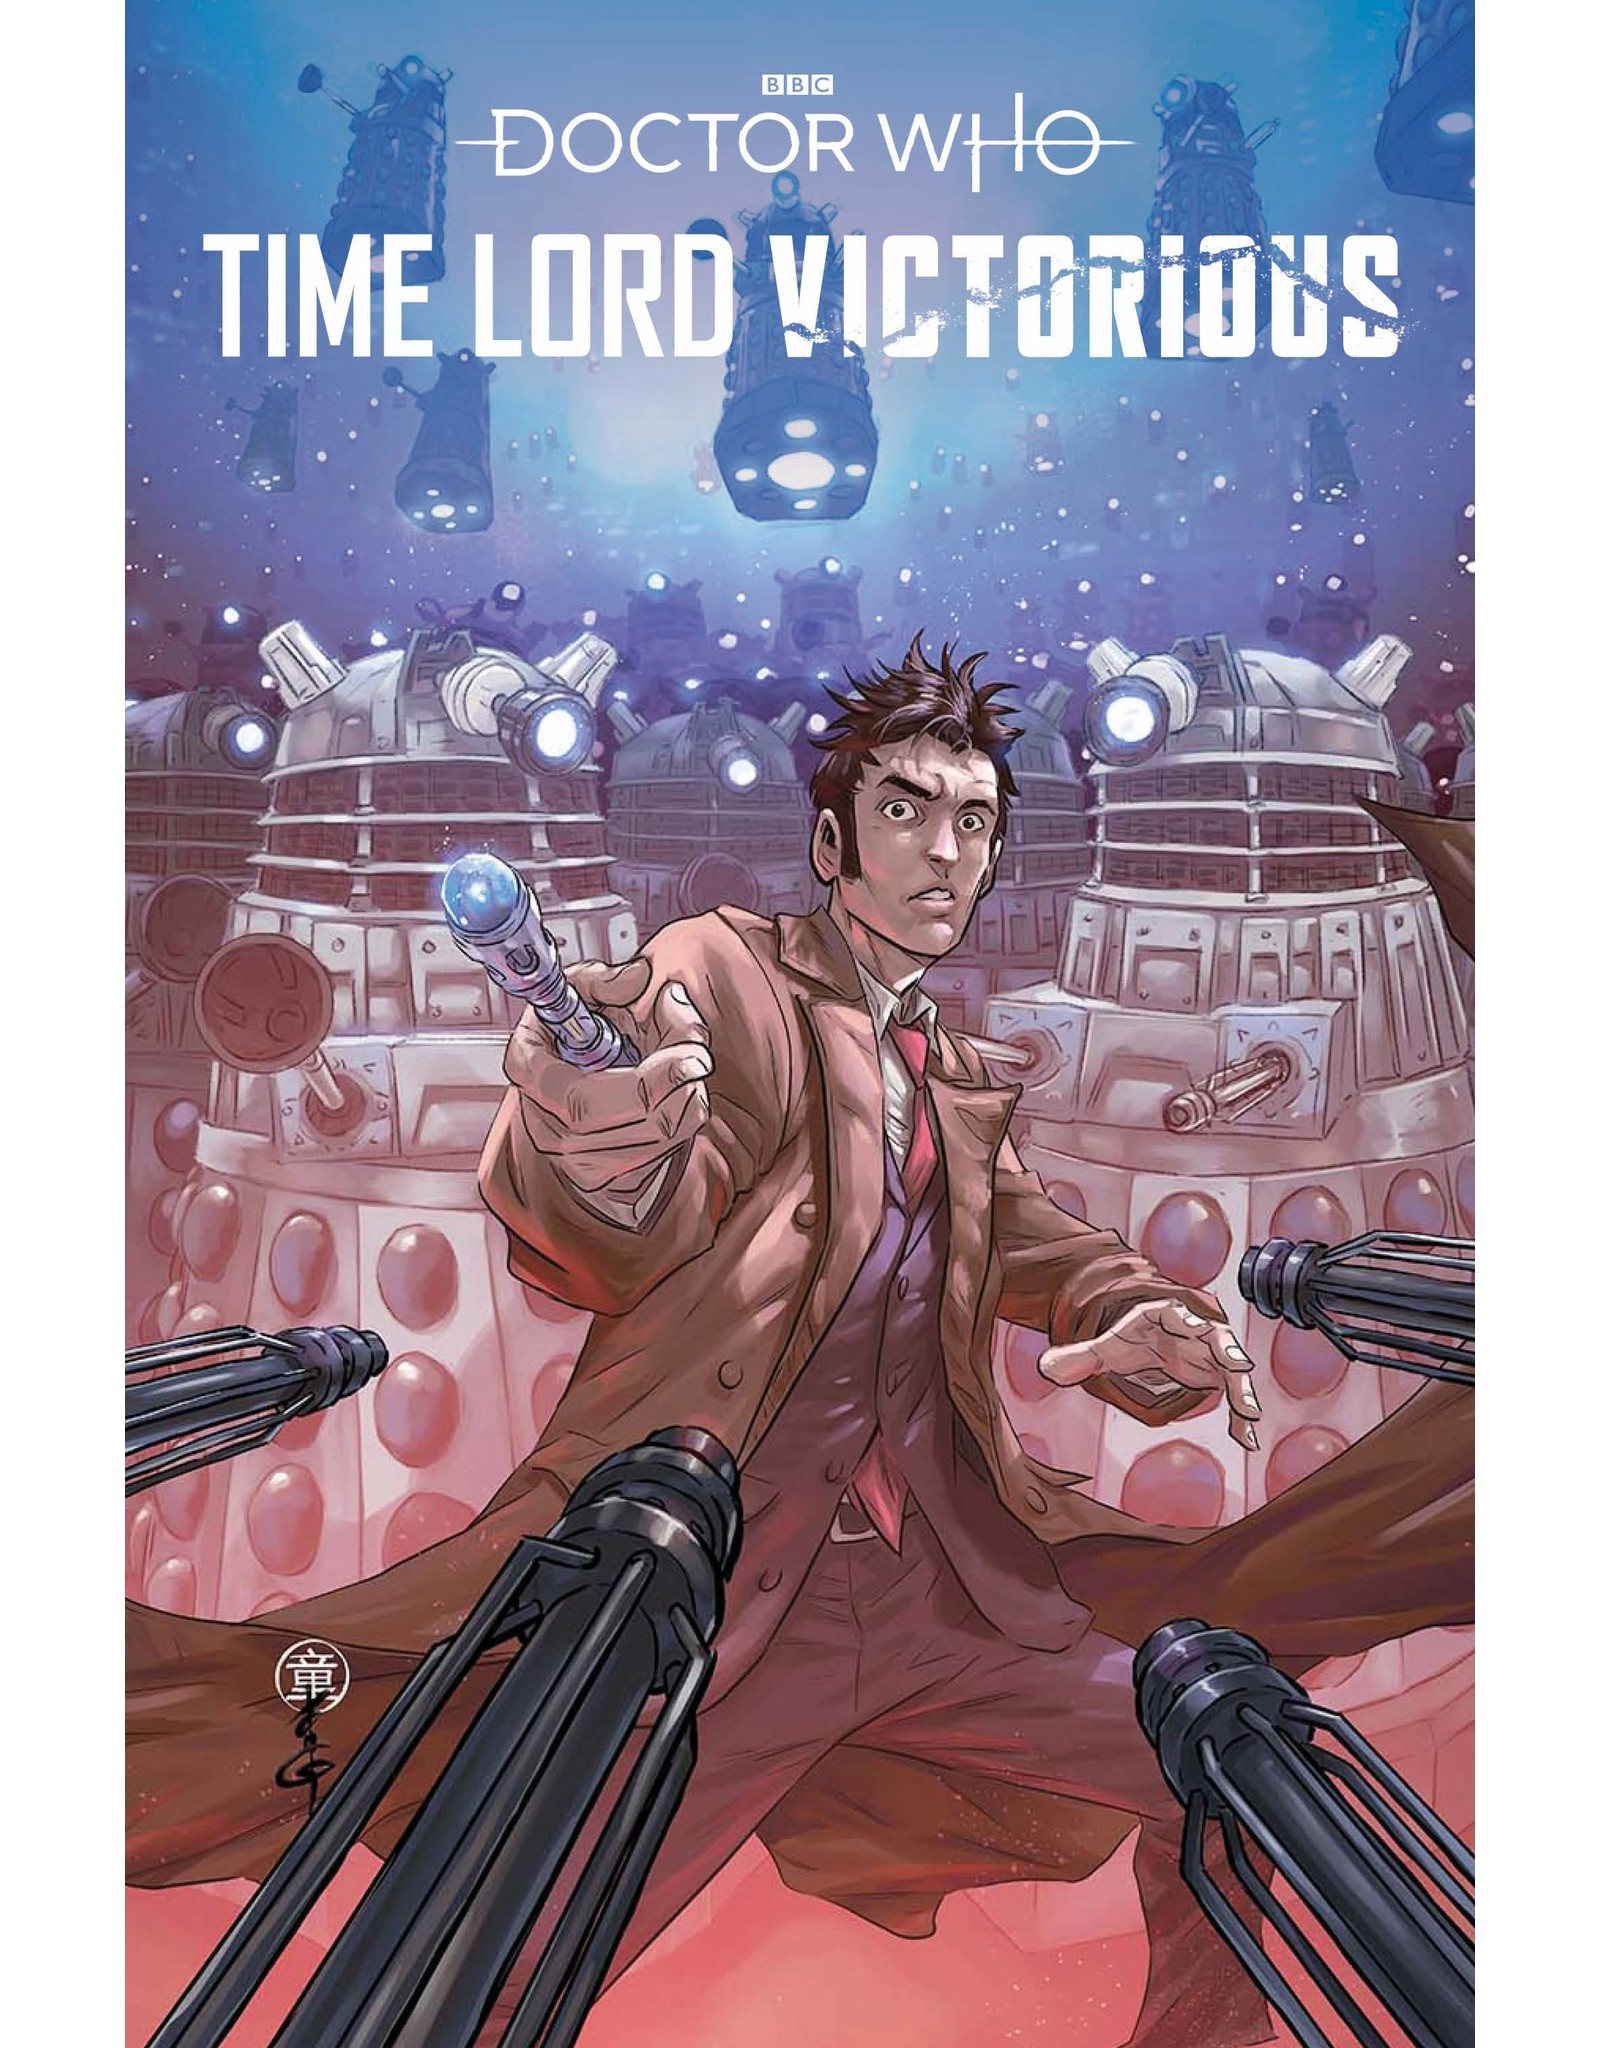 TITAN COMICS DOCTOR WHO TIME LORD VICTORIOUS #1 CVR C TONG